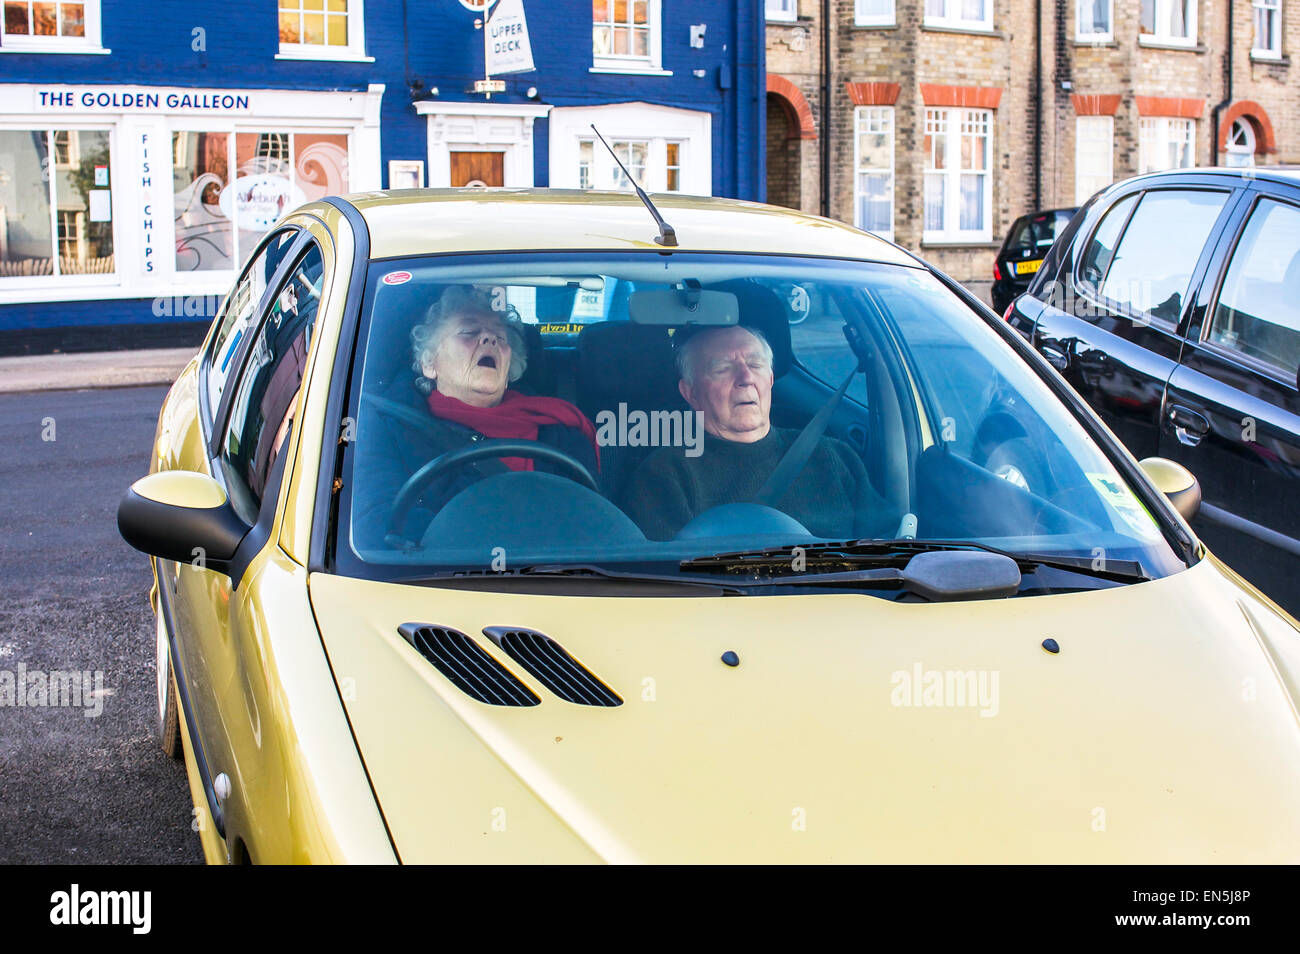 An older couple in England, apparently overwhelmed by the urge to sleep, parked the car, locked the doors, and did - Stock Image